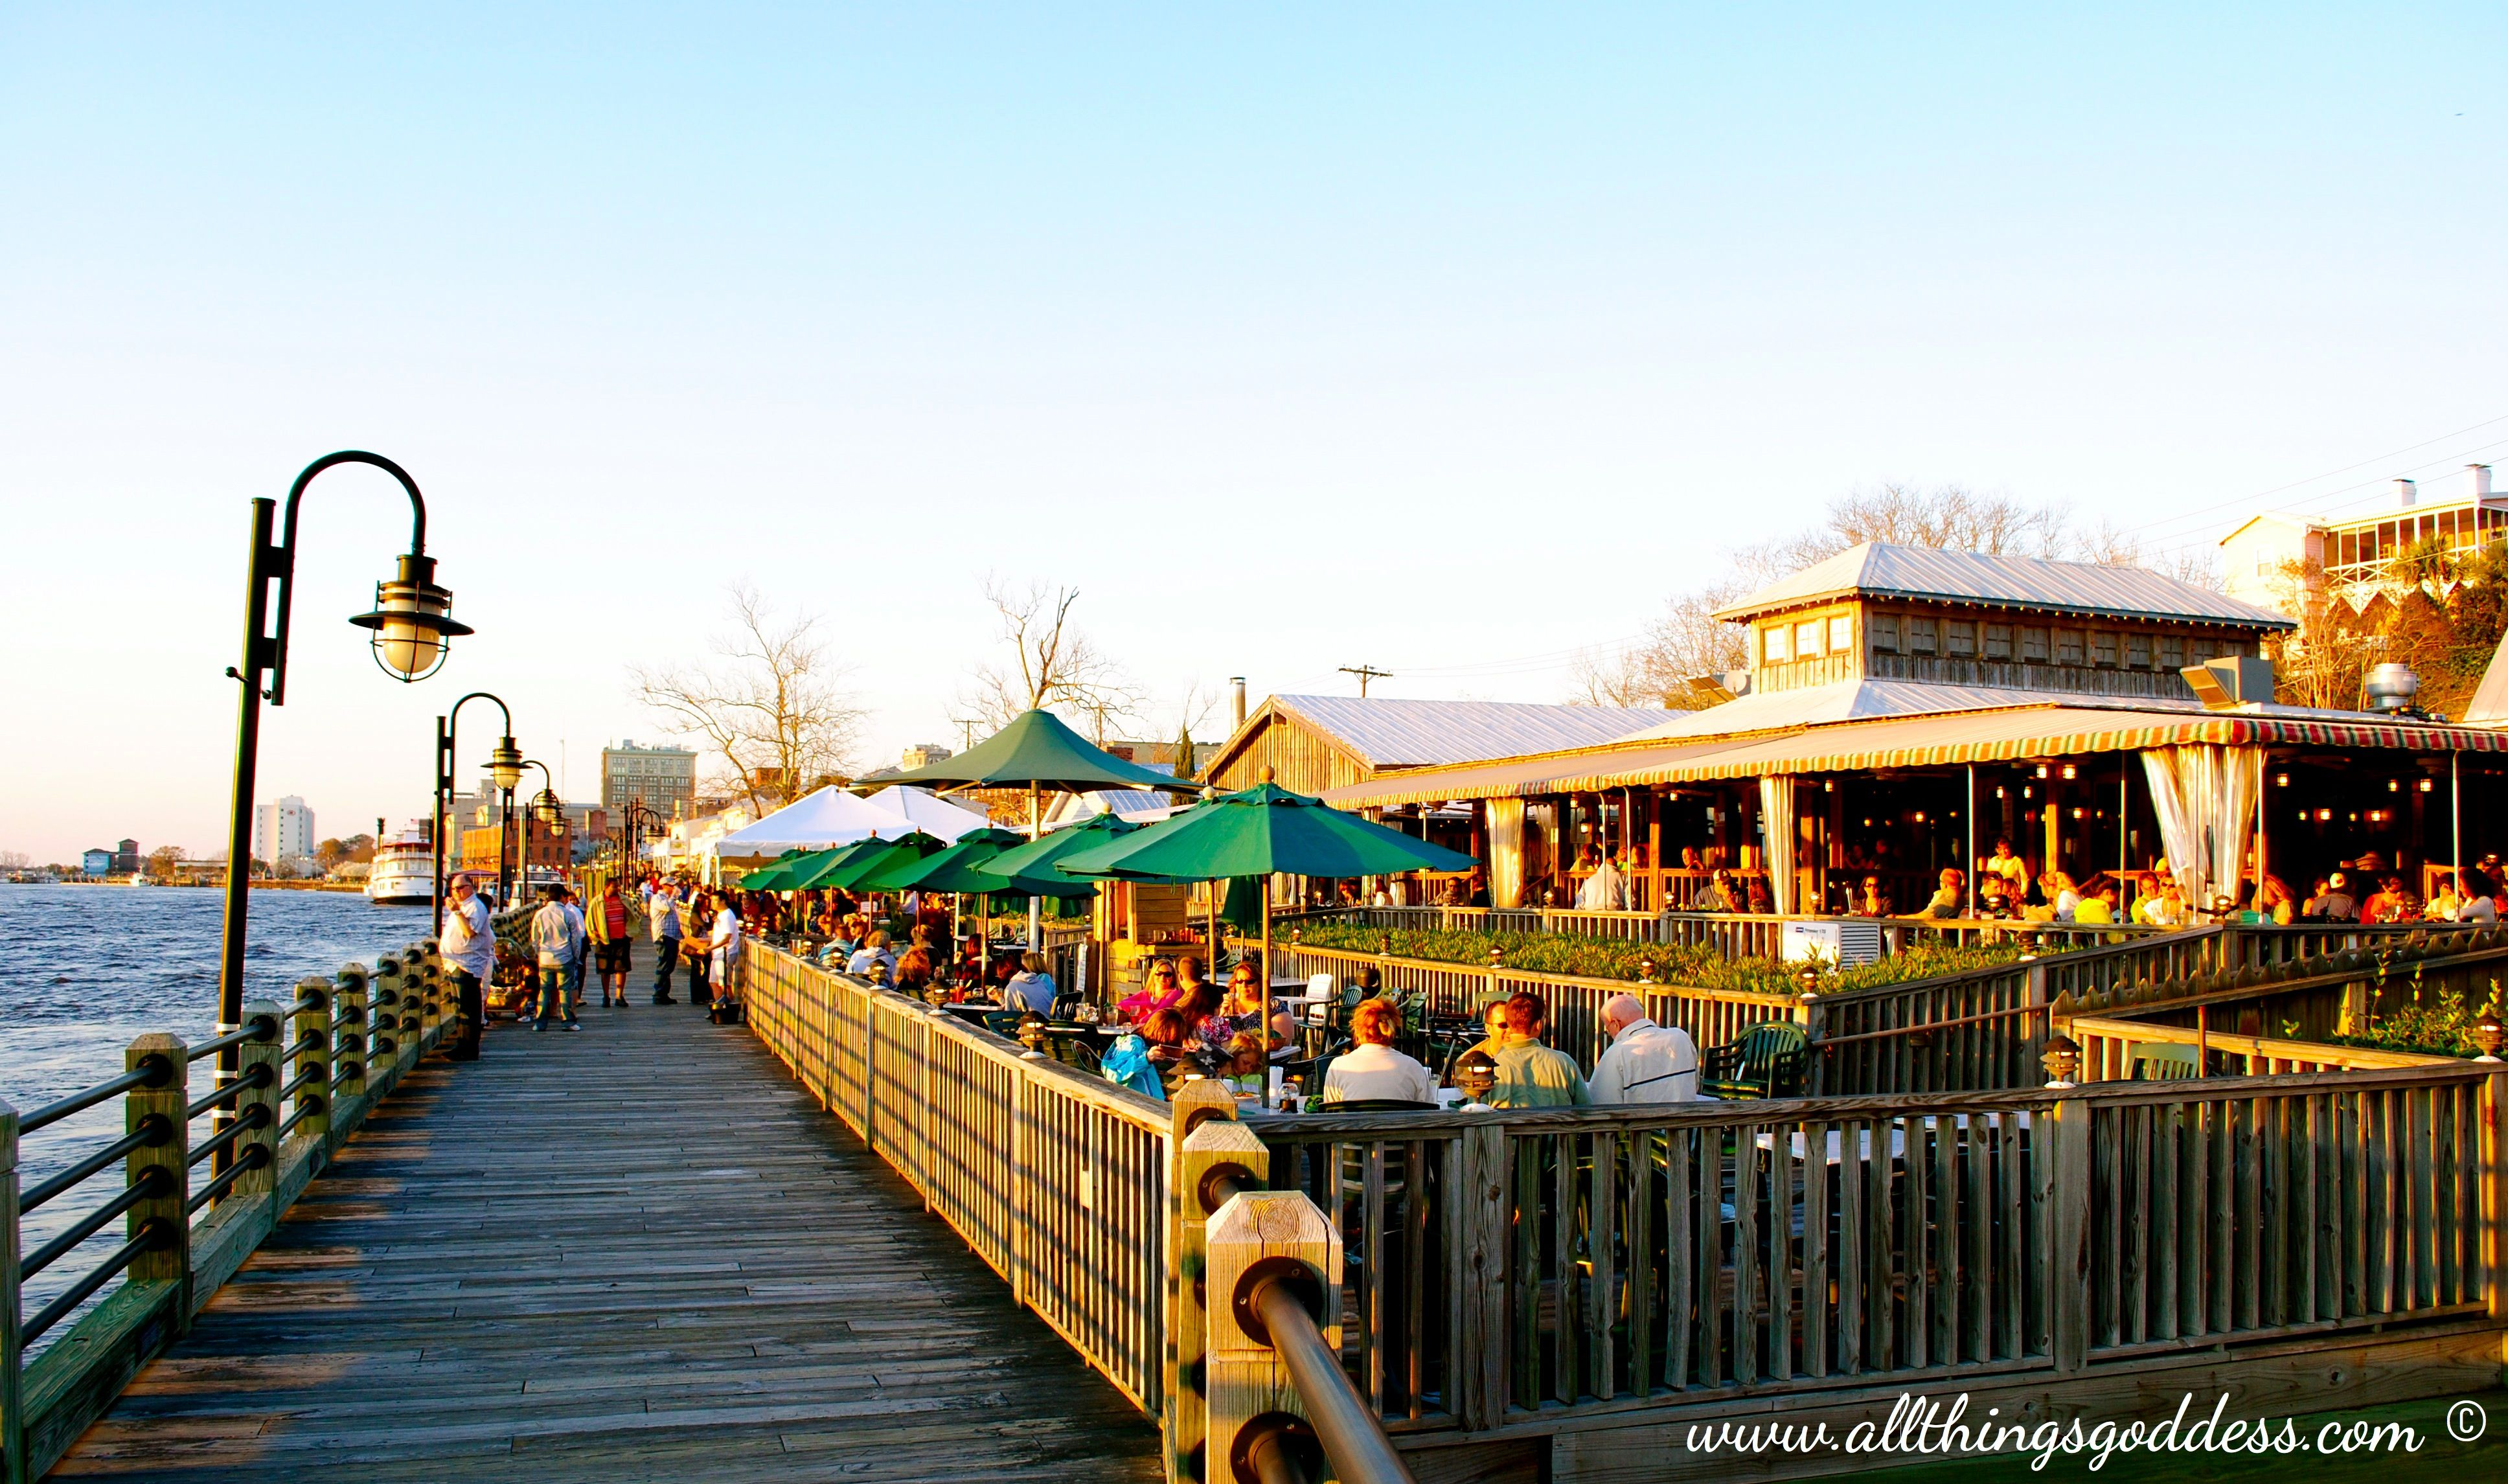 Elijah S On The Riverwalk In Wilmington Nc Their Seafood Cuisine Is Delish